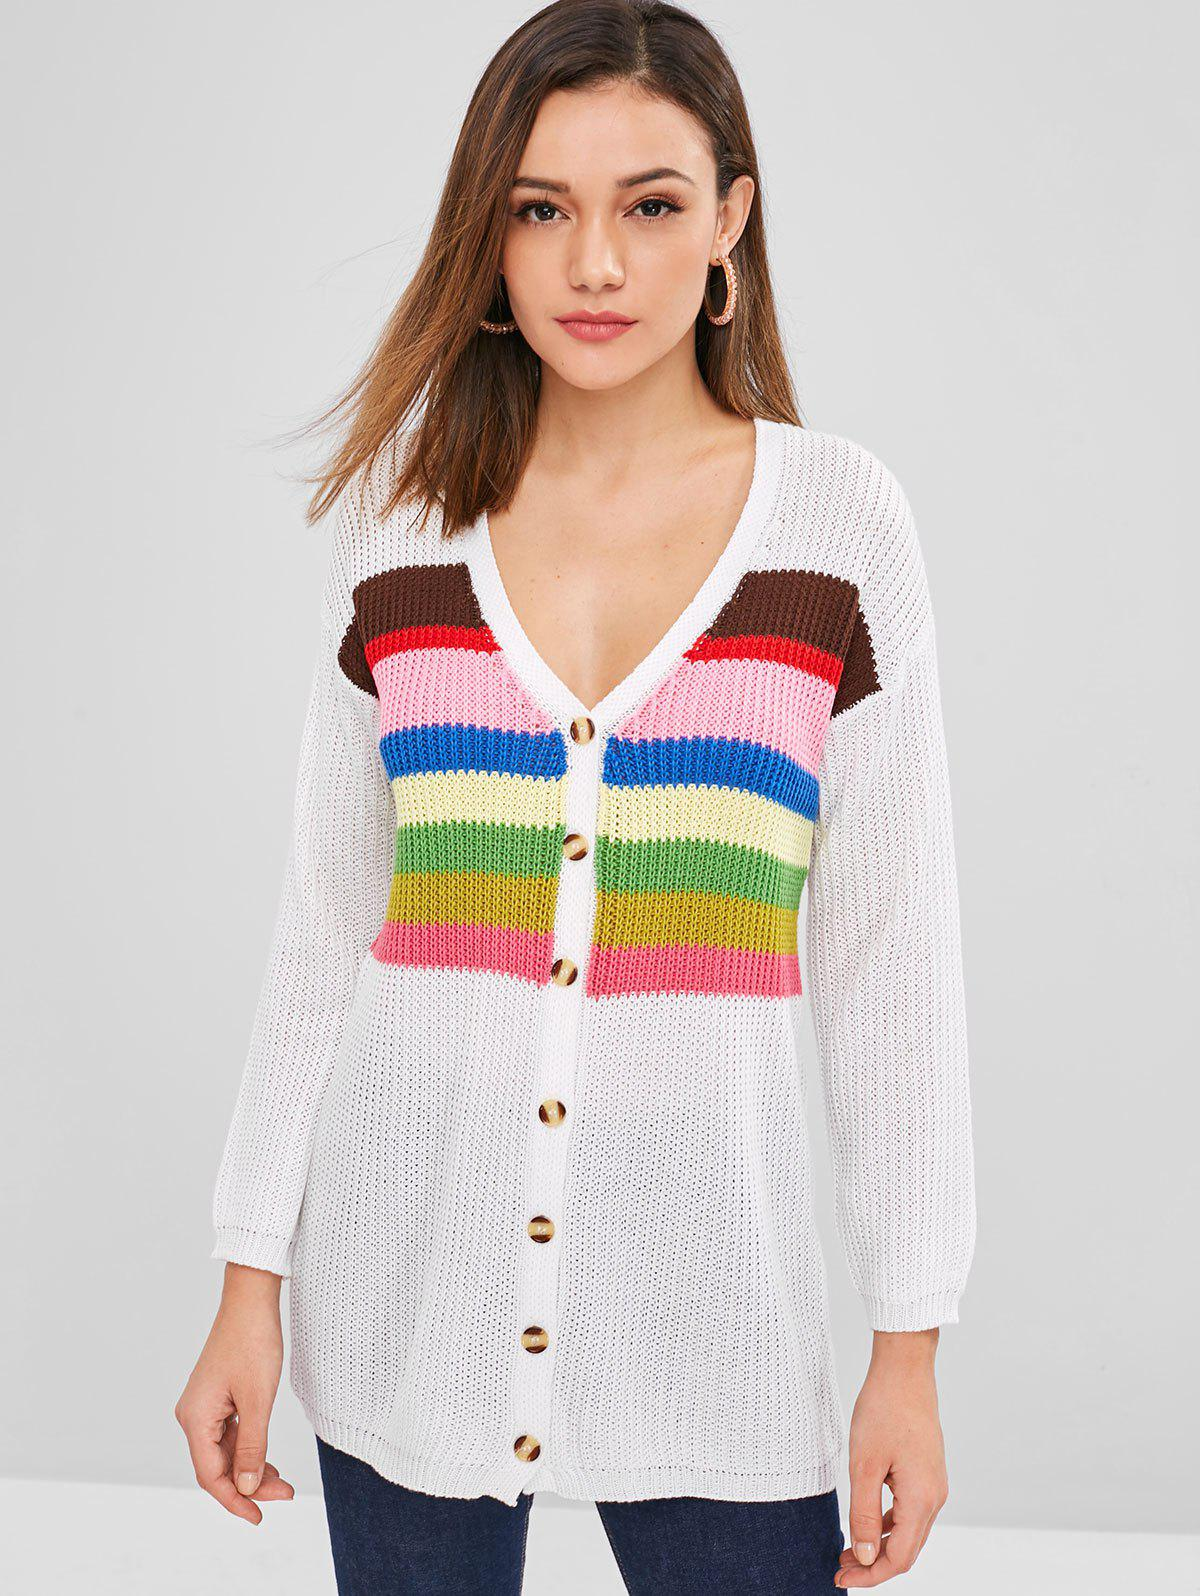 ZAFUL Button Up Colorful Stripes Cardigan